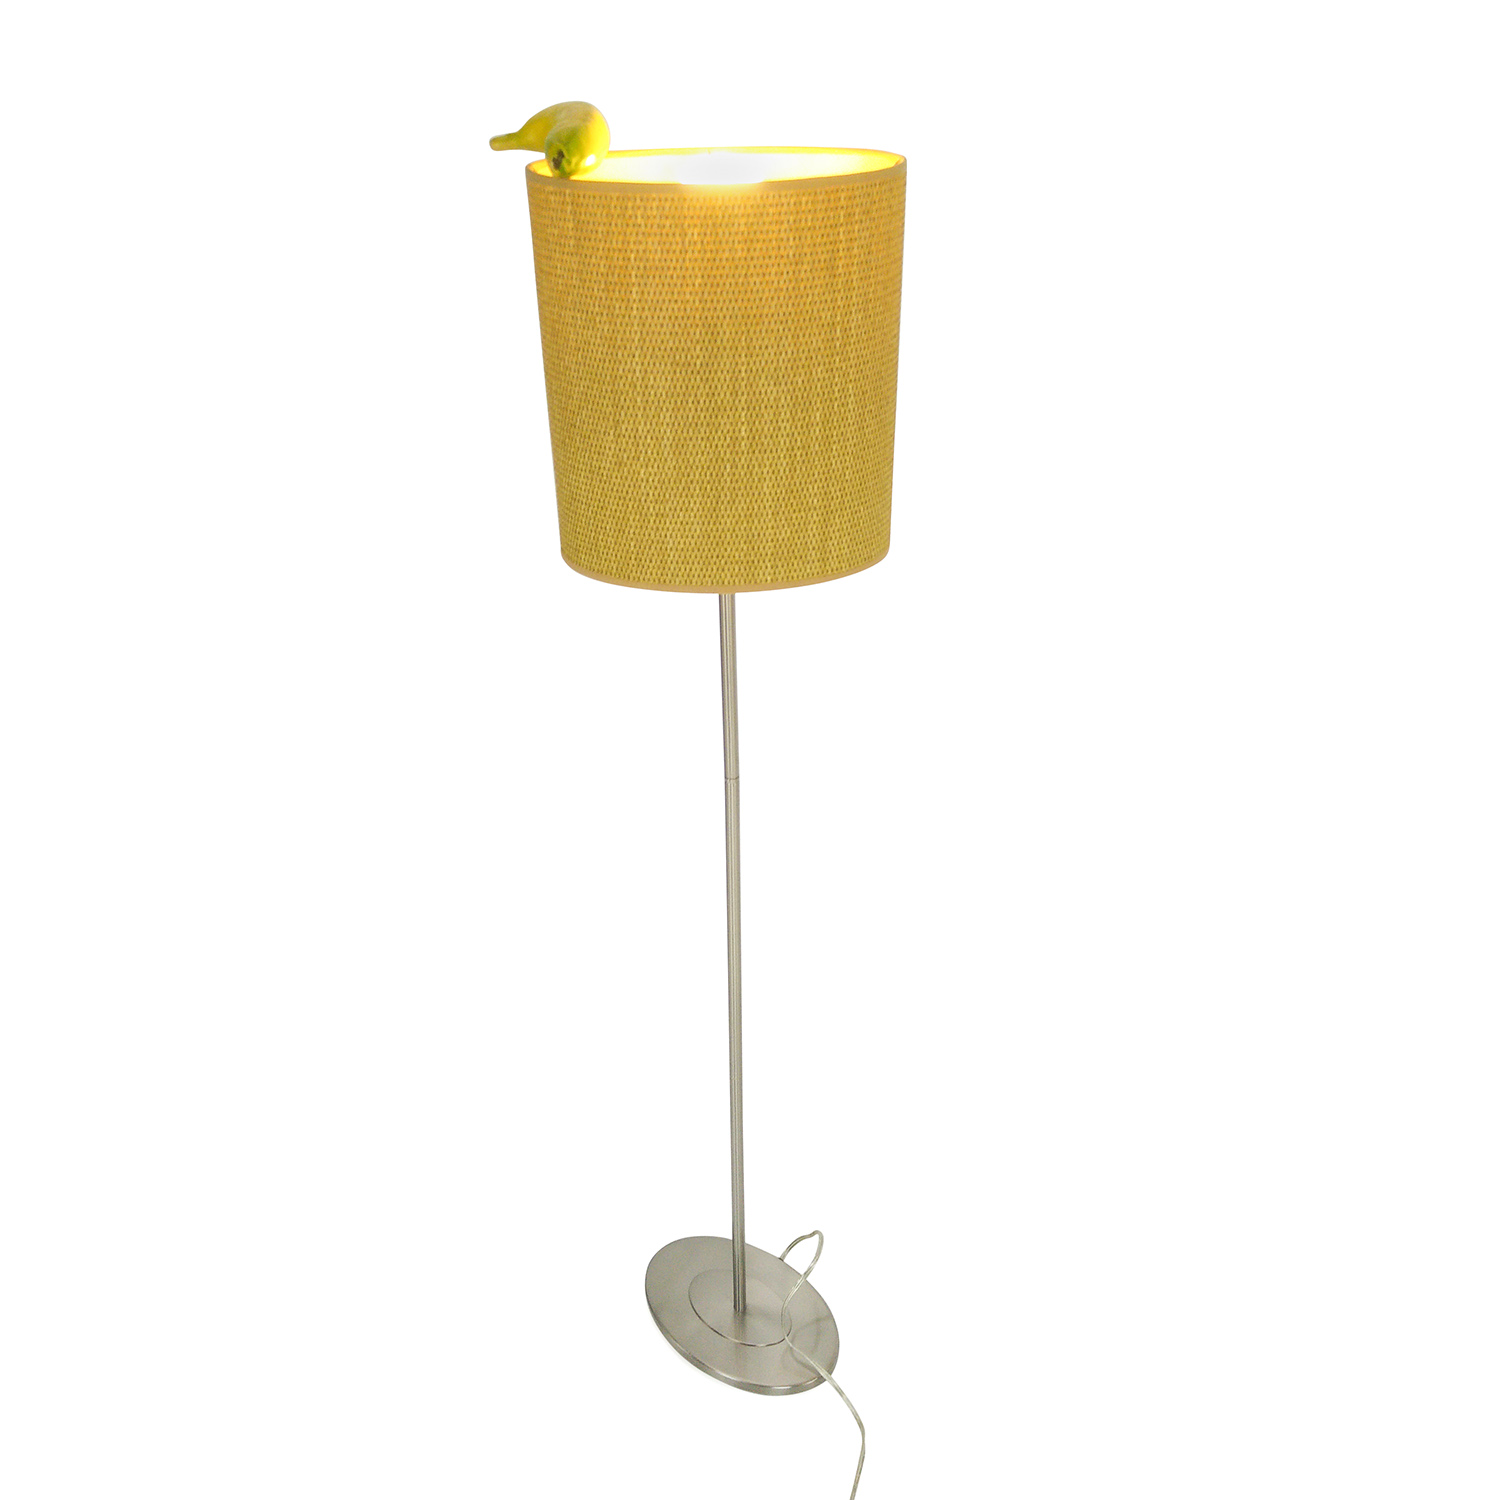 Unknown Brand Tan Floor Lamp price